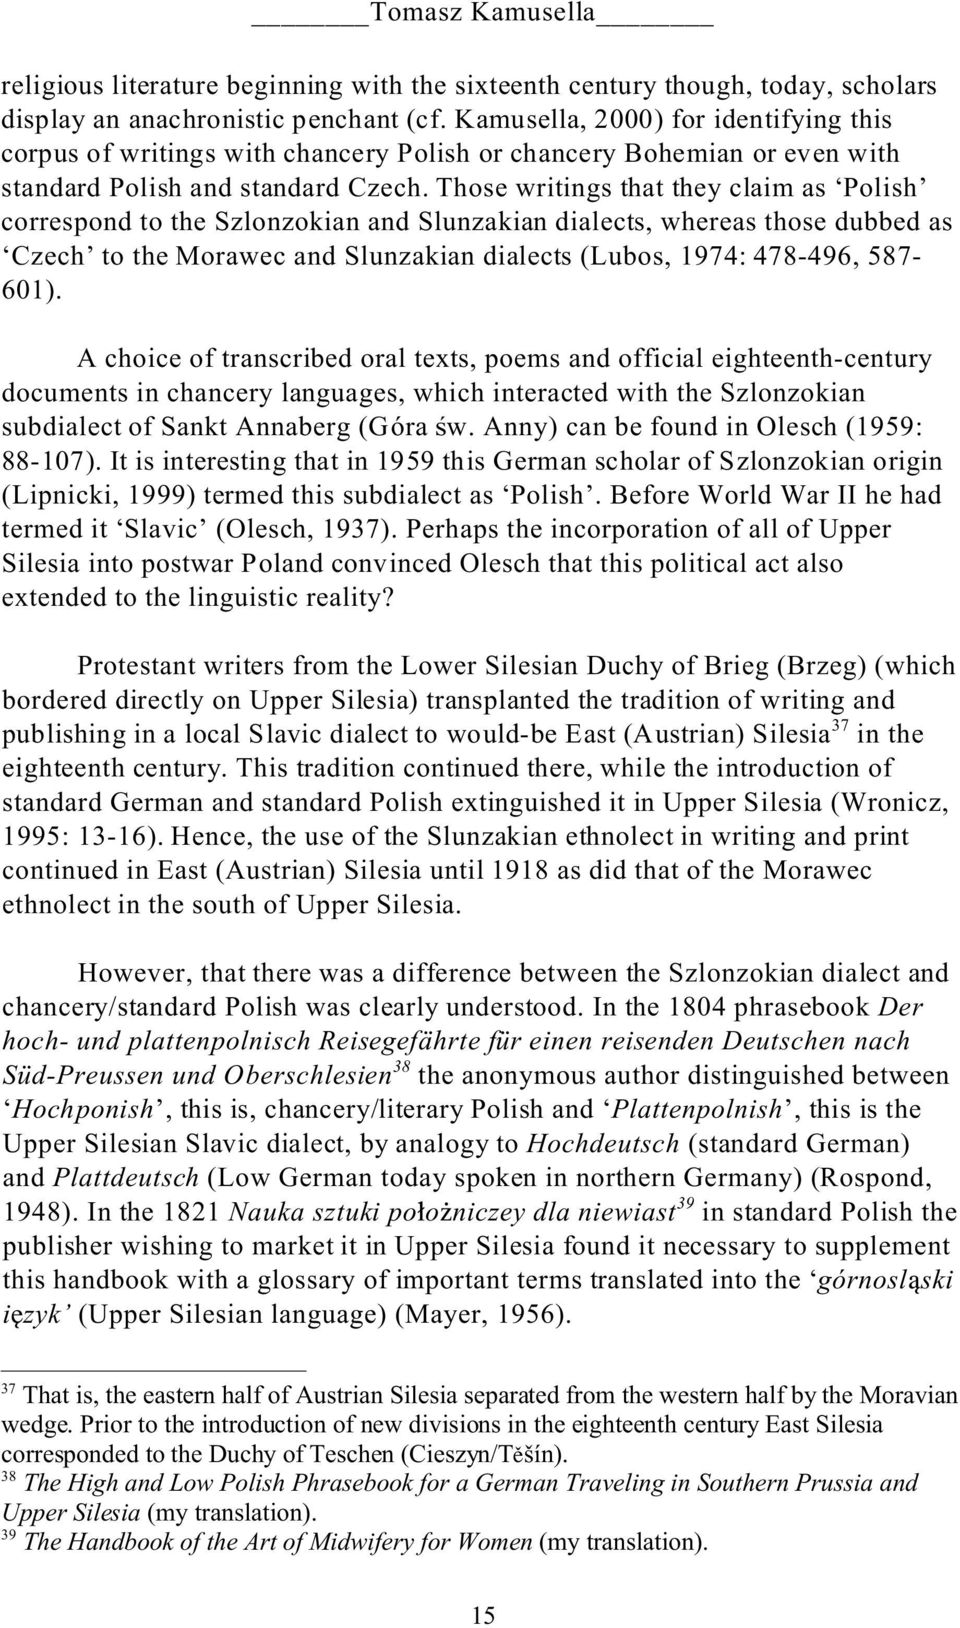 Those writings that they claim as Polish correspond to the Szlonzokian and Slunzakian dialects, whereas those dubbed as Czech to the Morawec and Slunzakian dialects (Lubos, 1974: 478-496, 587-601).